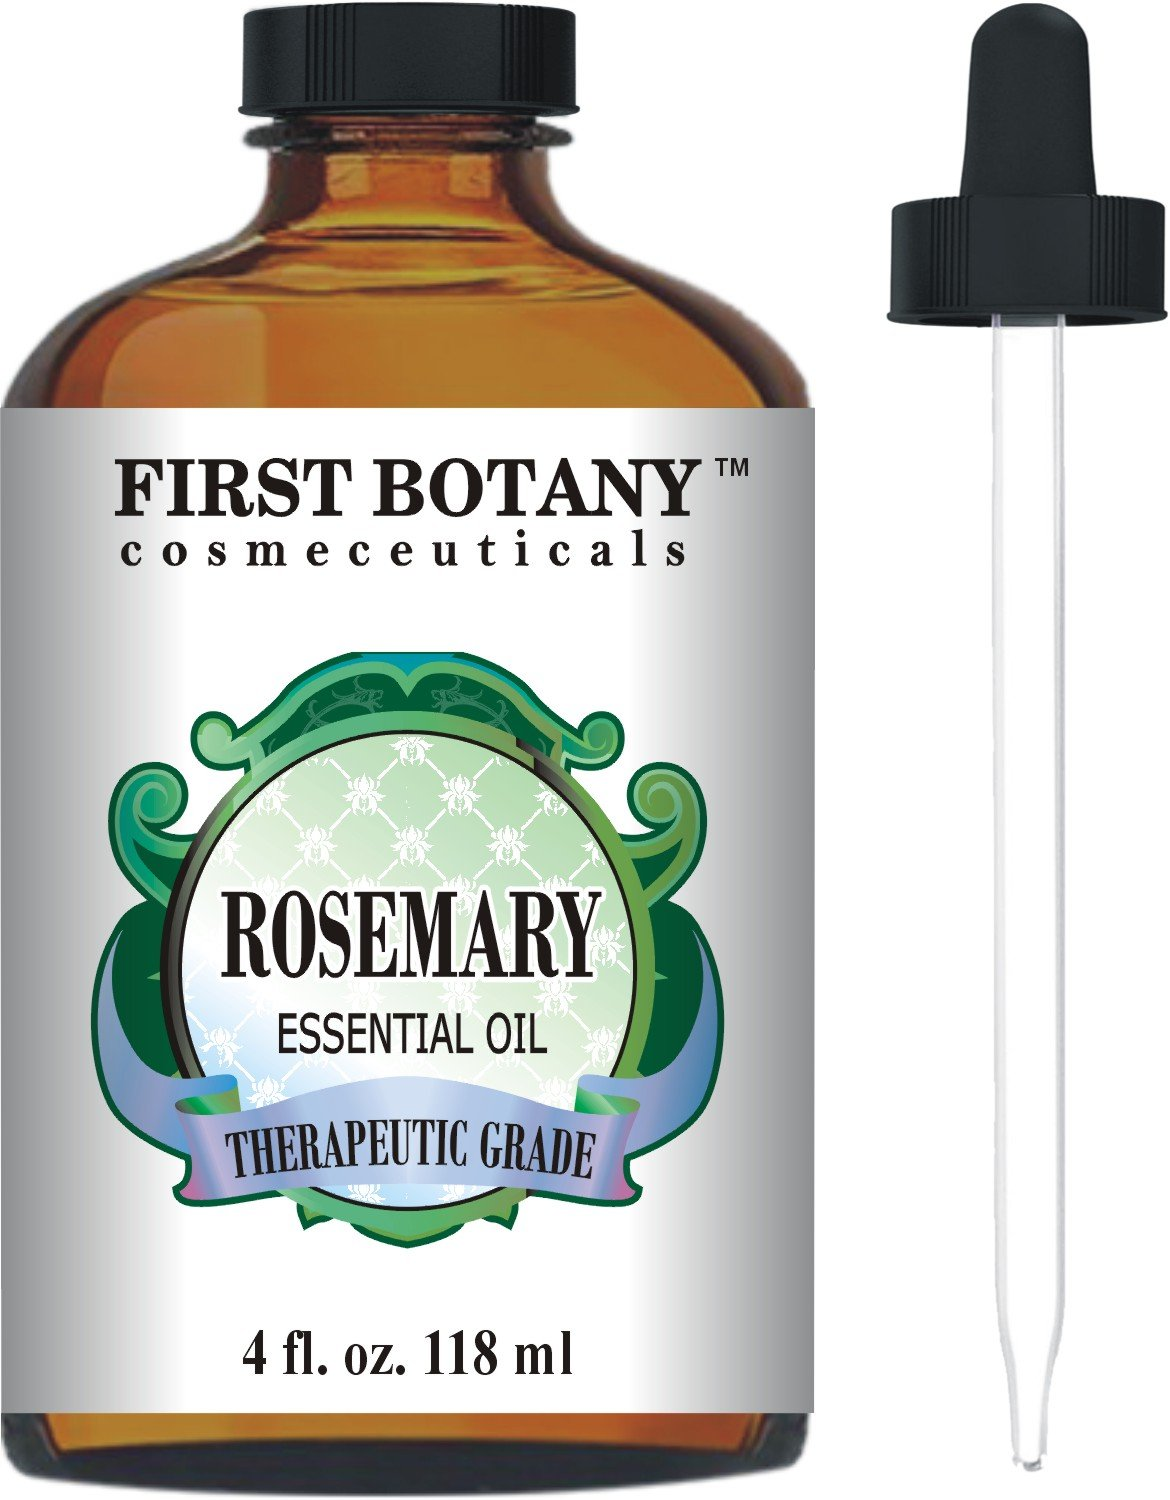 Rosemary Essential Oil Big 4 fl. oz. – Premium & Therapeutic Grade - Great for Hair Strengthening & Growth, Dandruff as well Pain Relief for Men and Women